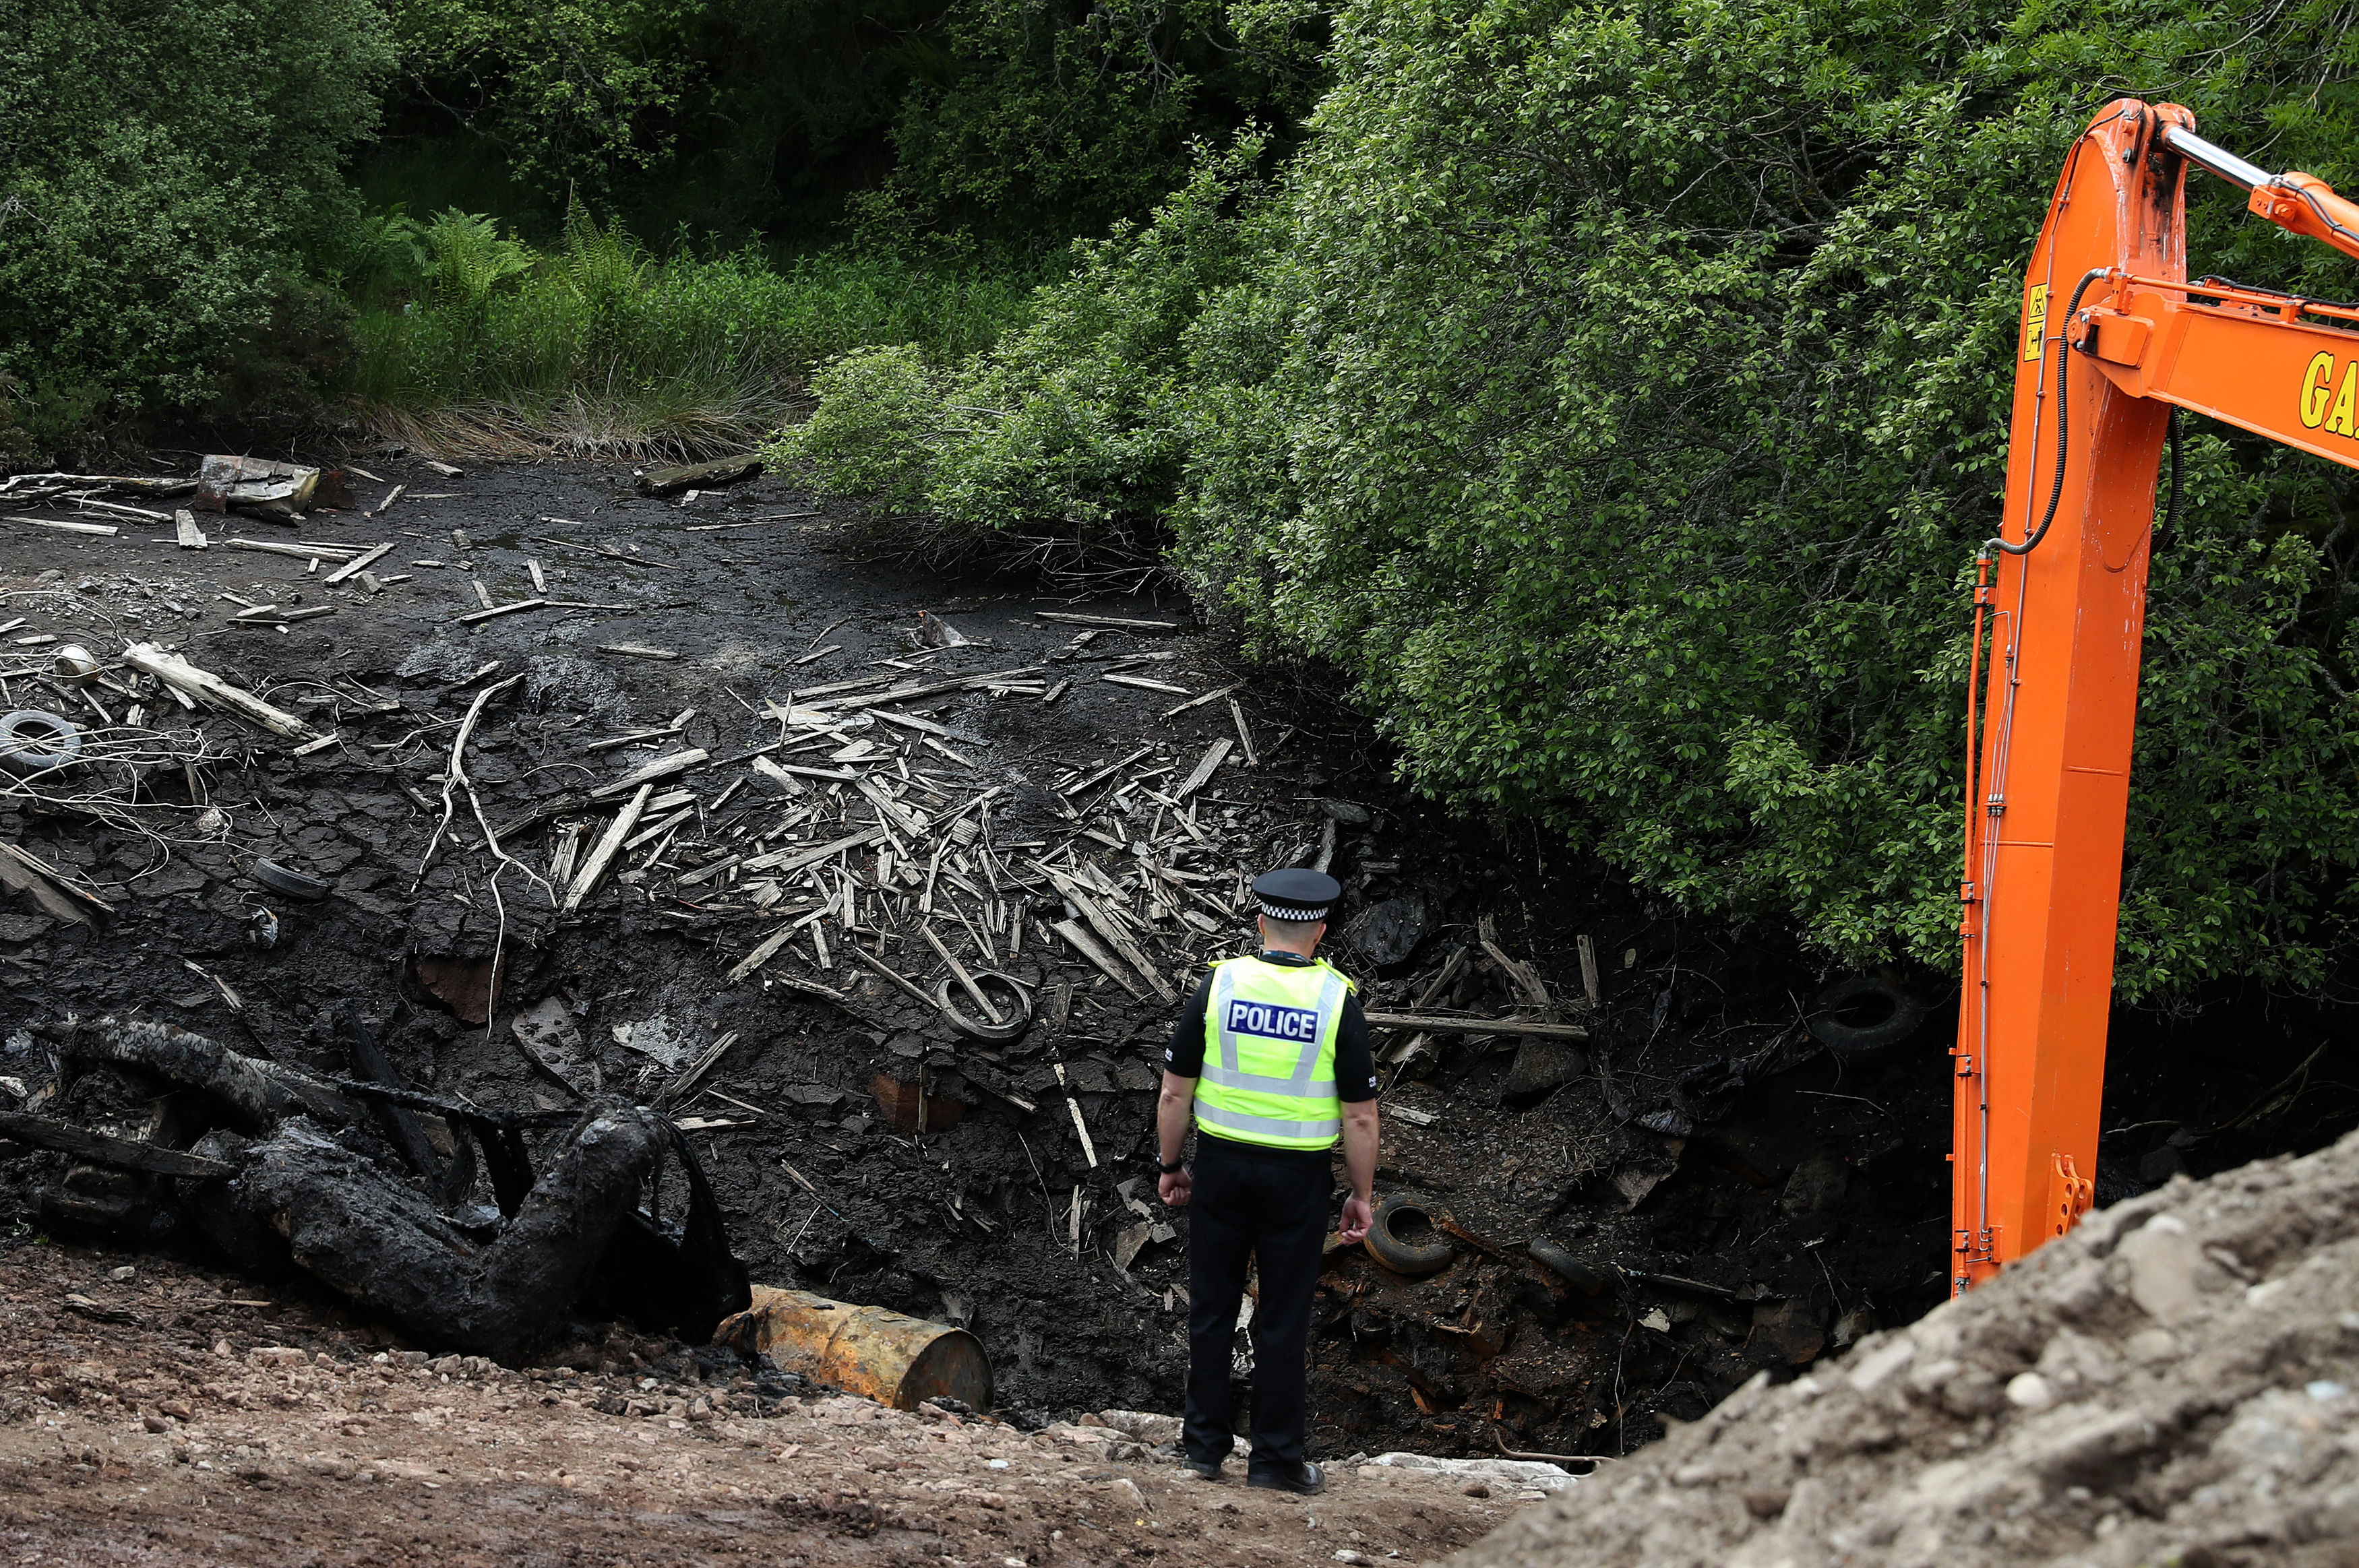 A Police officer at the emptied Leanach Quarry near Inverness